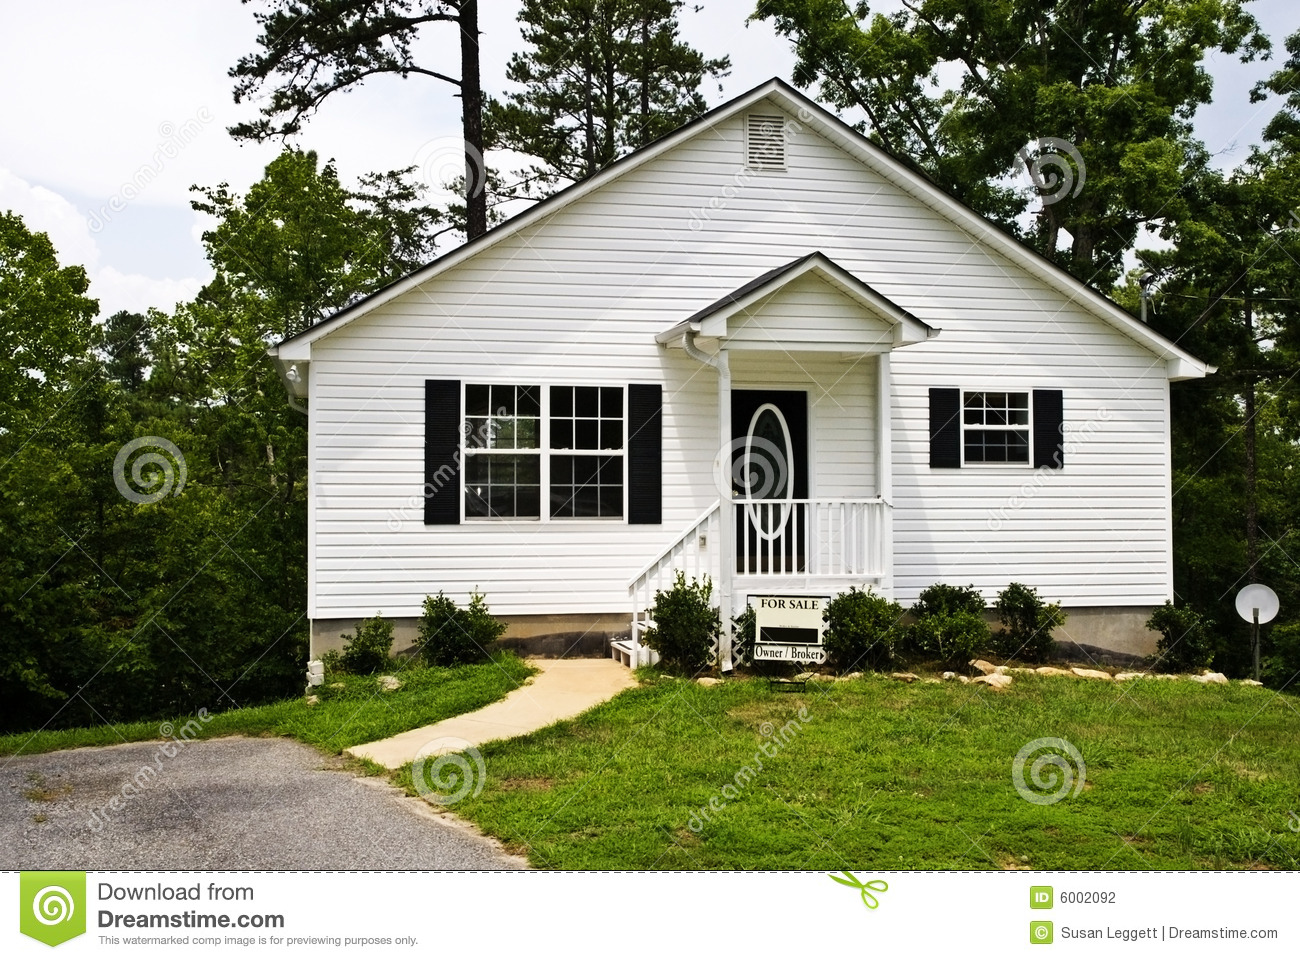 Small White HouseFor Sale Stock Photography Image 6002092